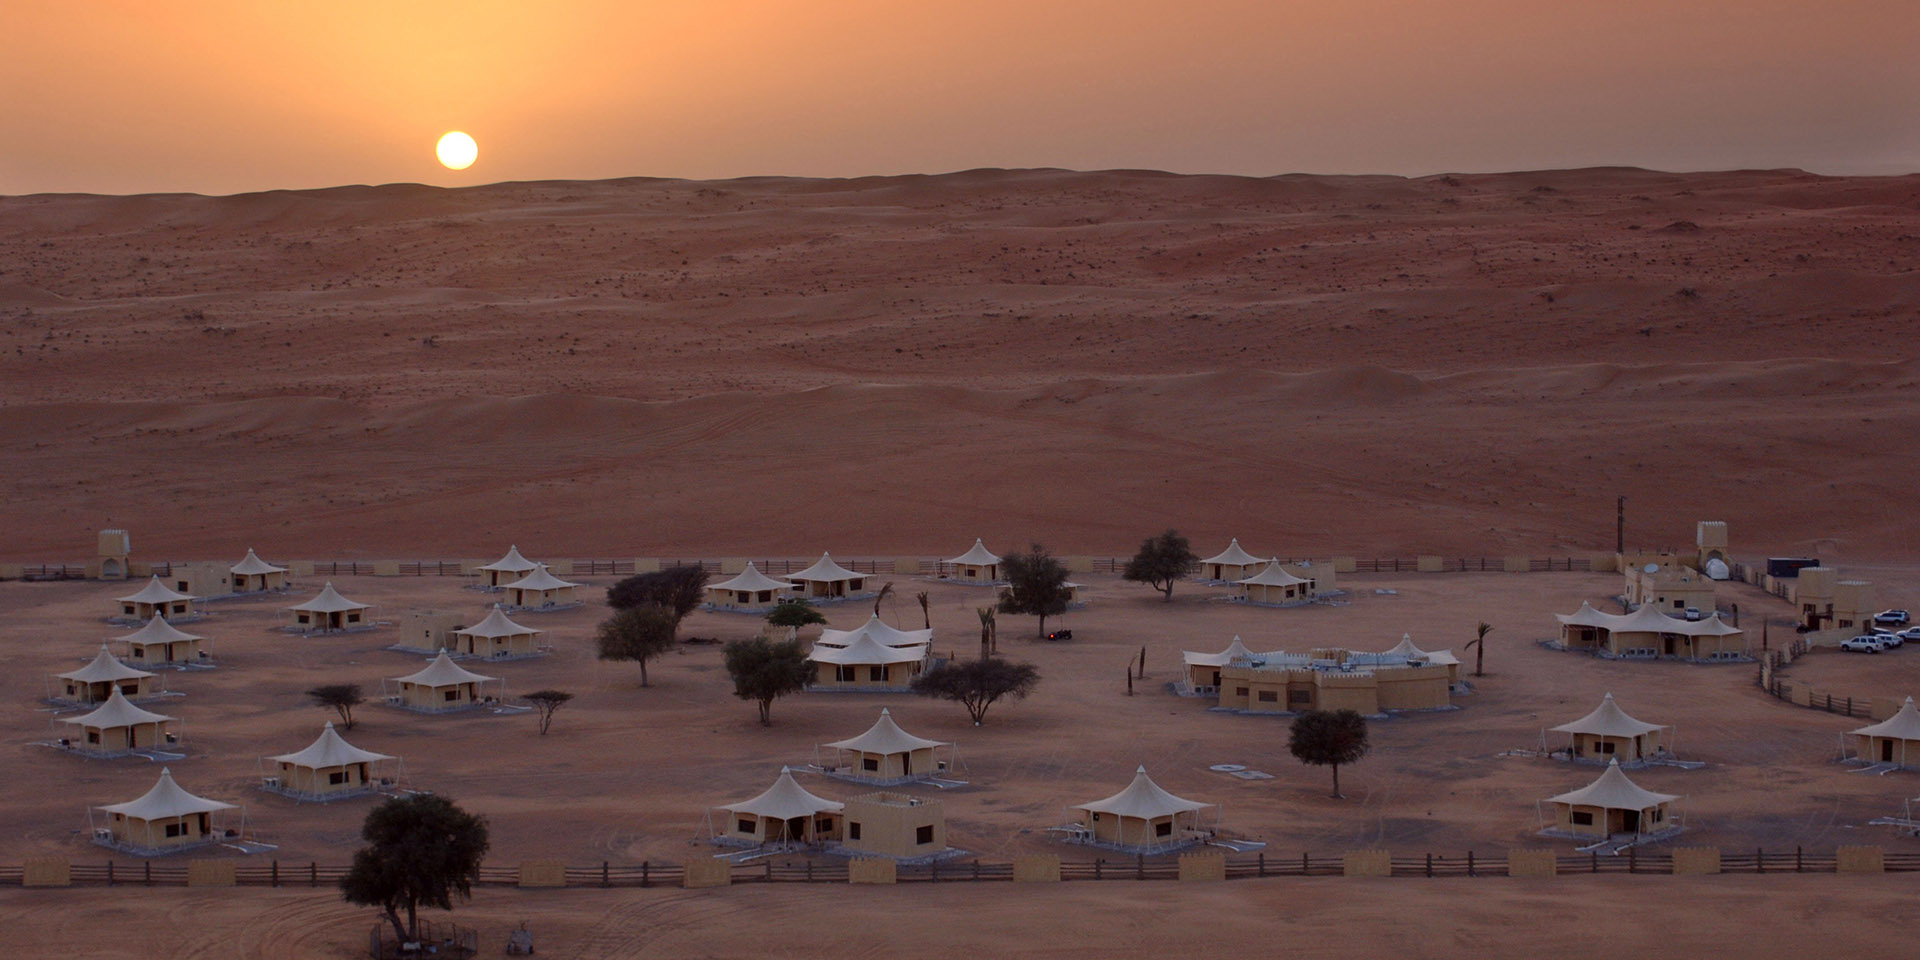 Arabian Nights: Glamping in the Desert